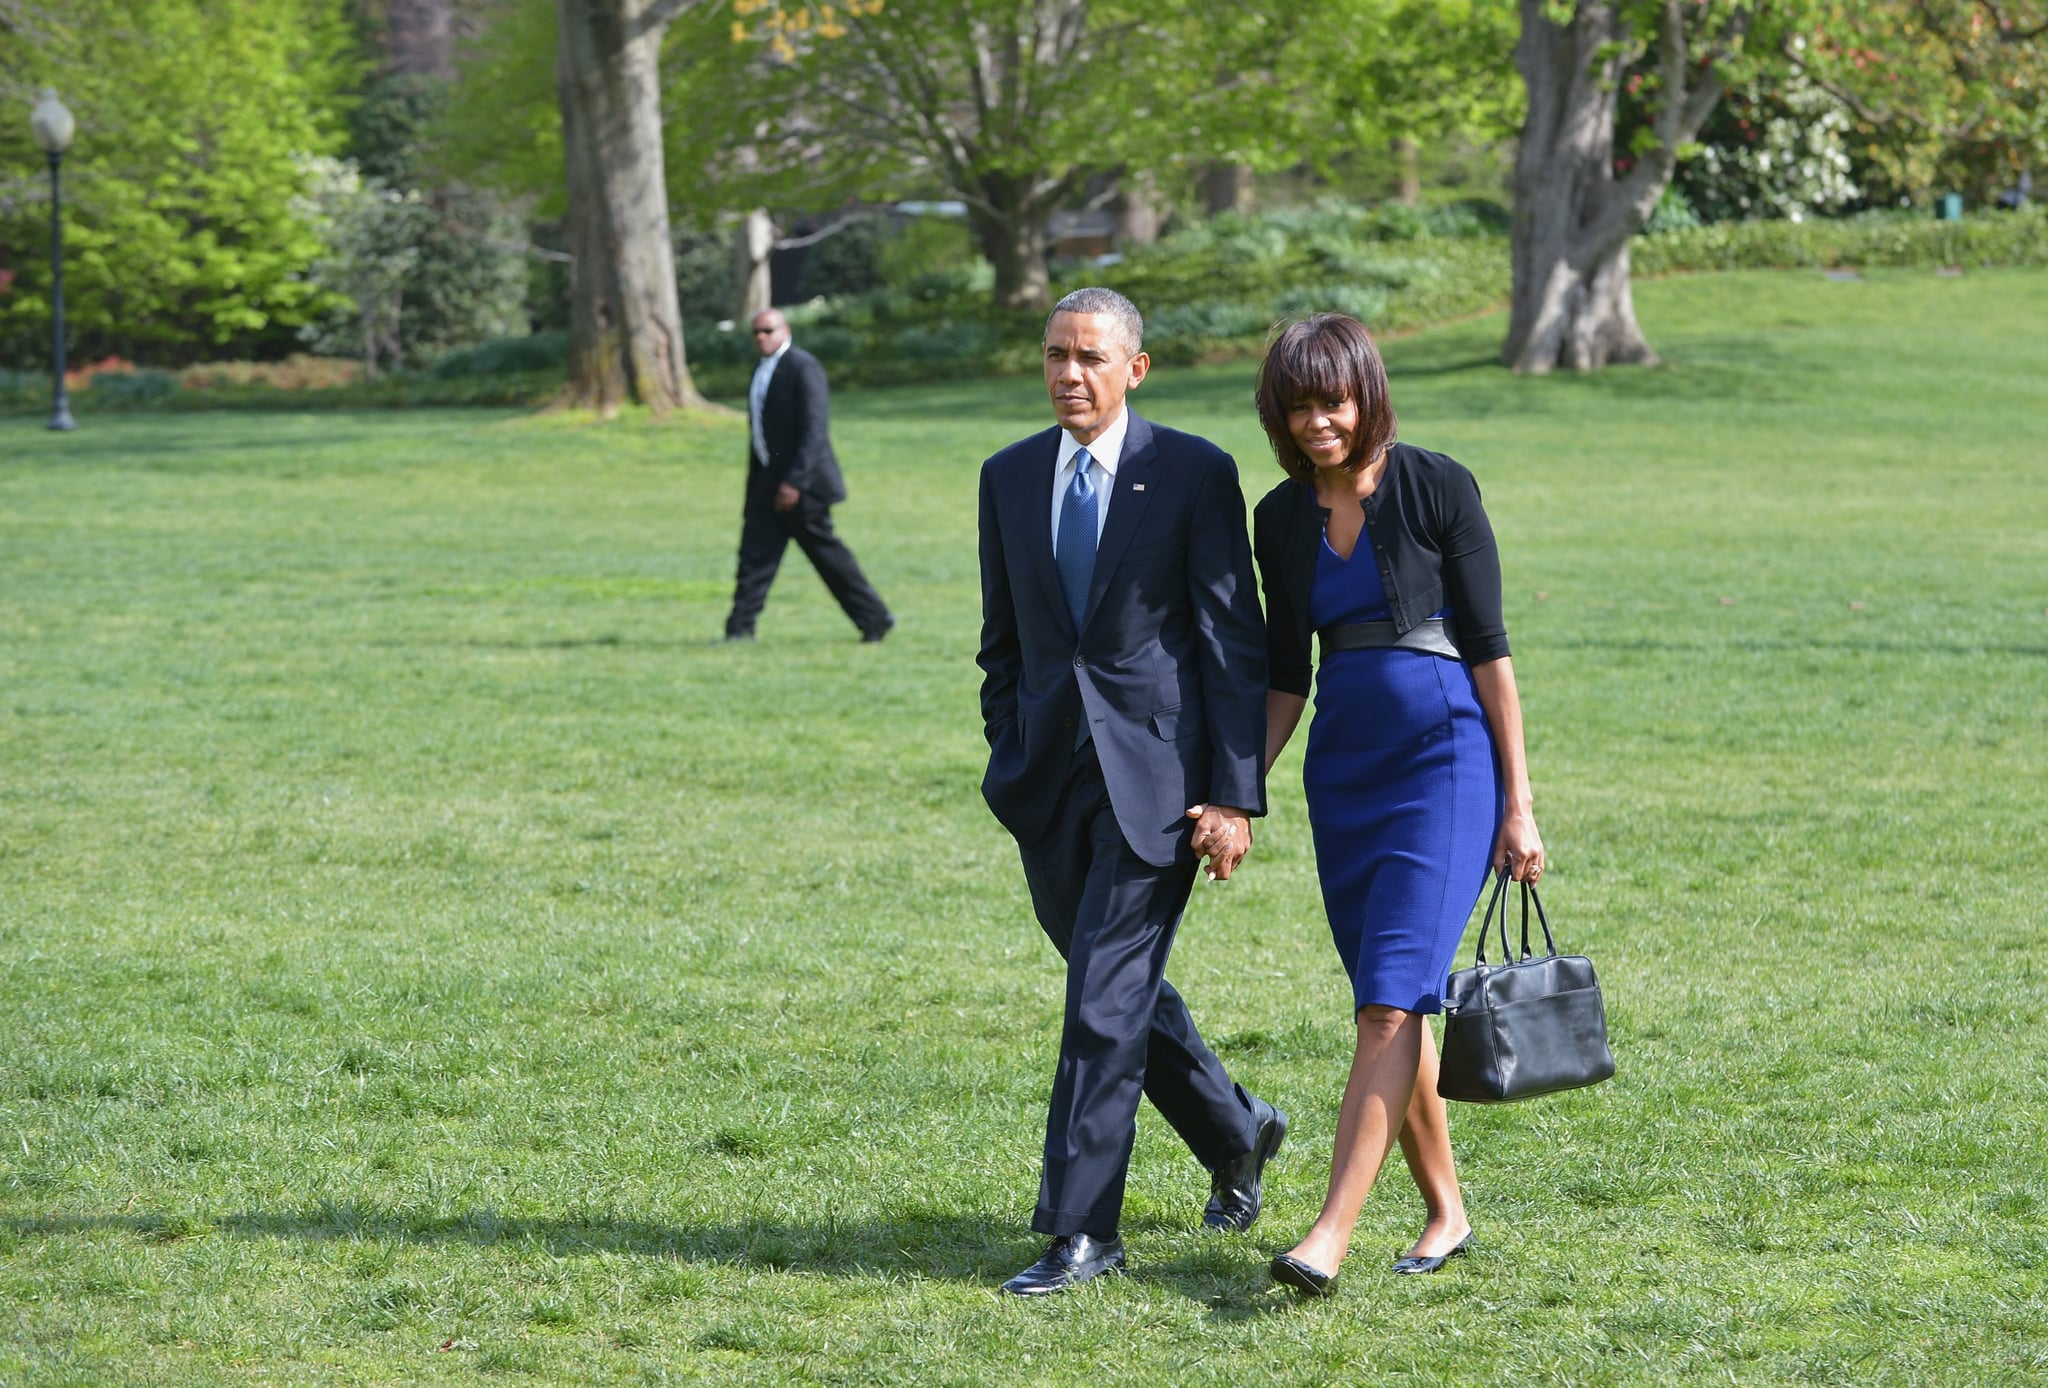 President Obama and Michelle Obama stepped out together in matching shades of blue in mid-April.